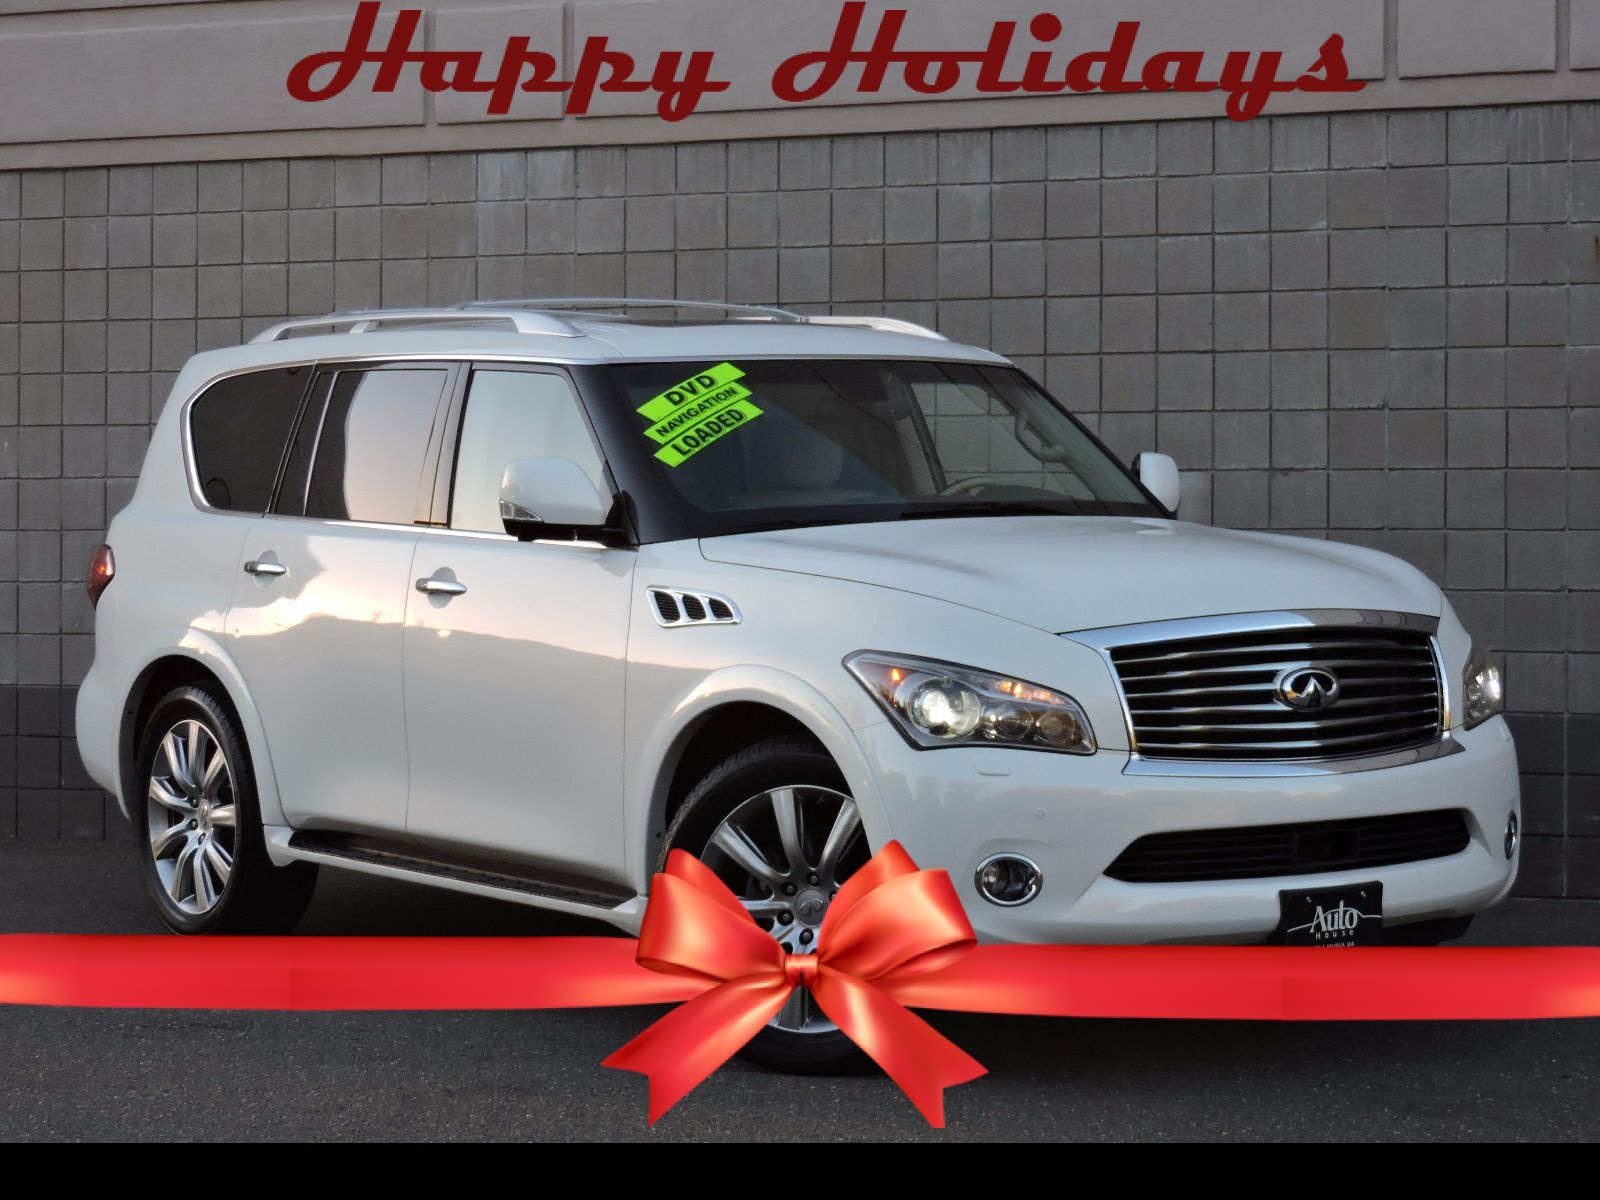 Used 2011 infiniti qx56 8 passenger at auto house usa saugus 2011 infiniti qx56 all wheel drive navigation dvd video entertainment vanachro Image collections